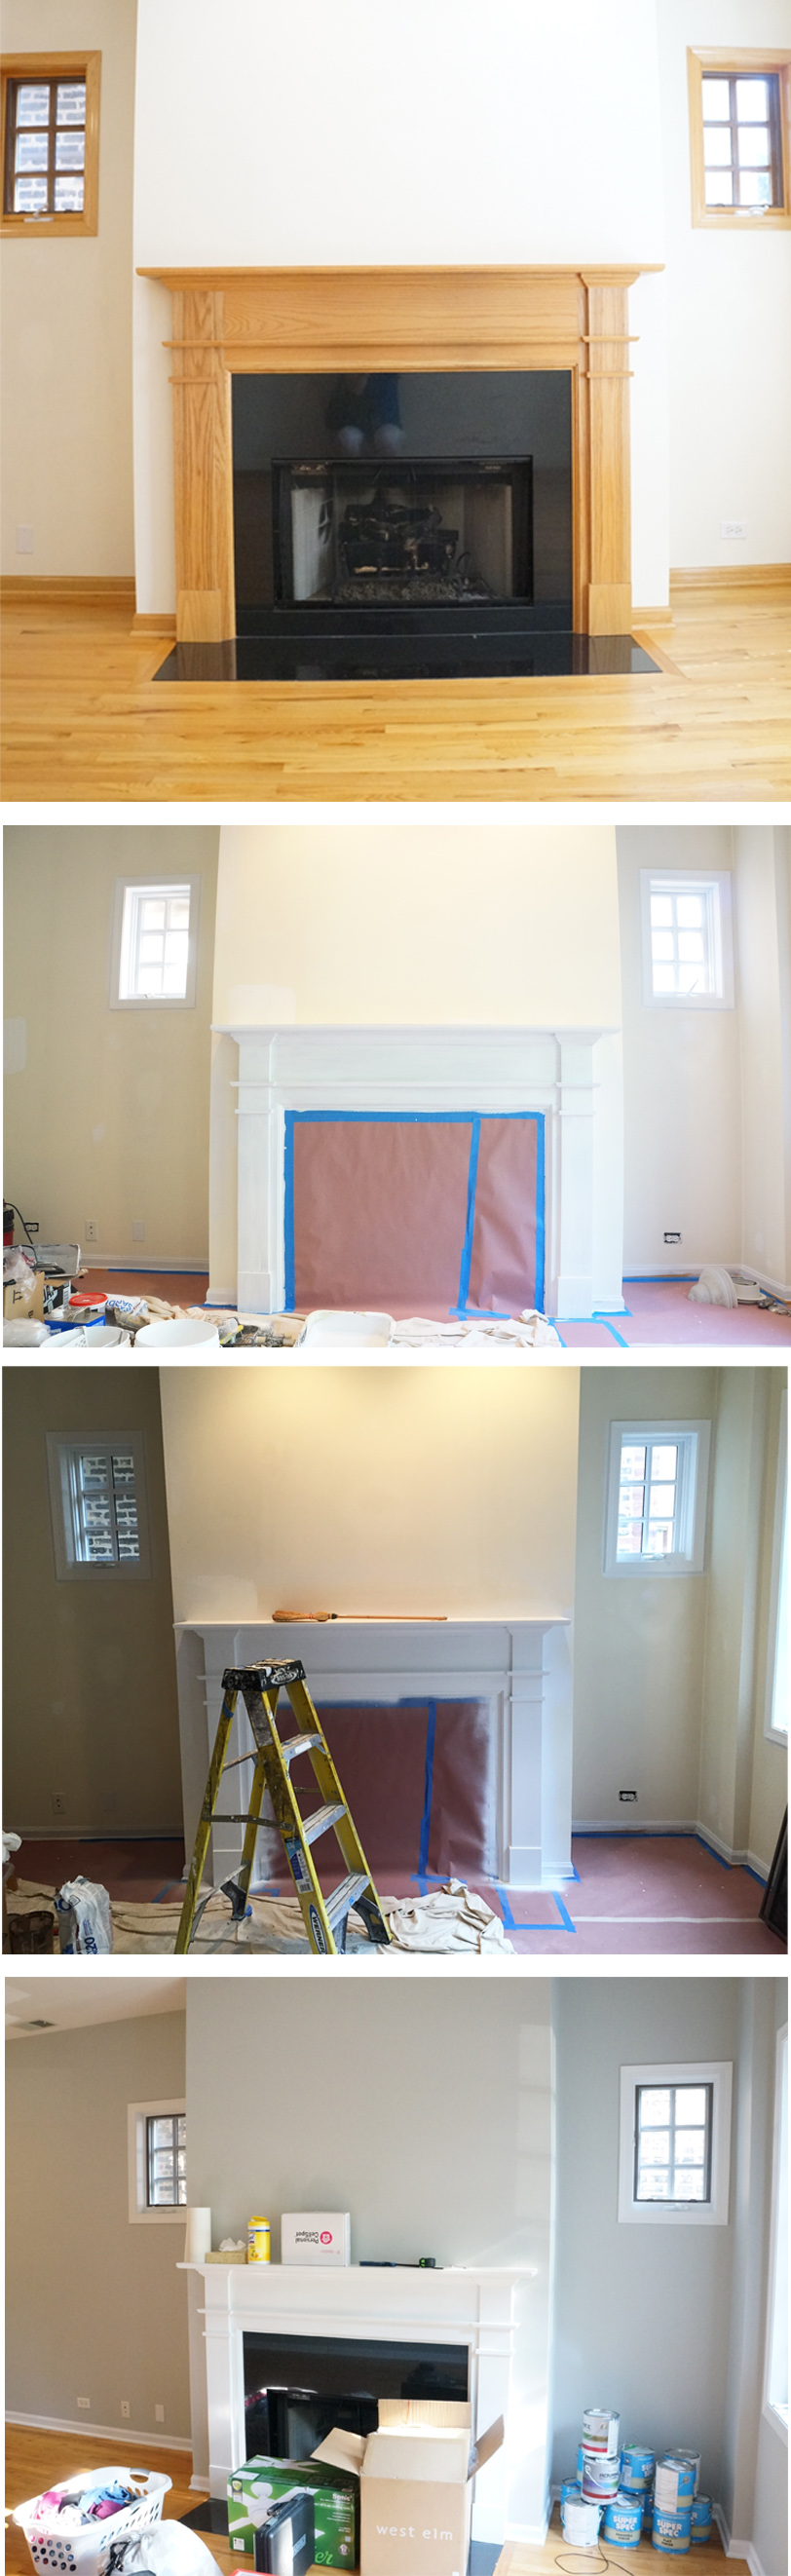 fireplace in progress